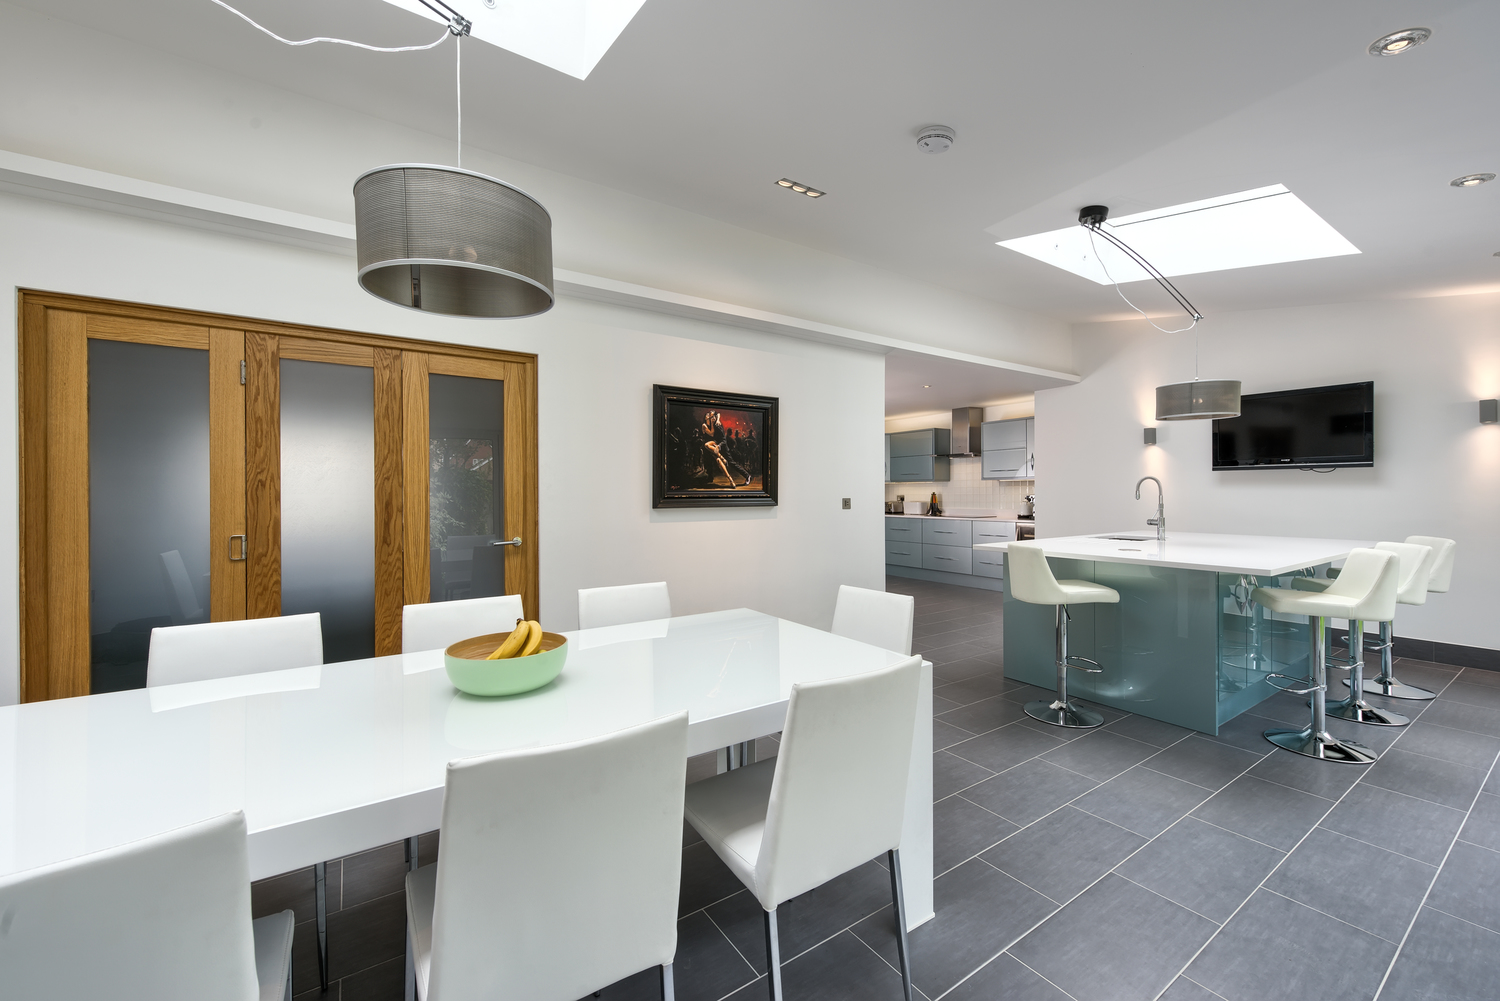 Connected kitchen spaces